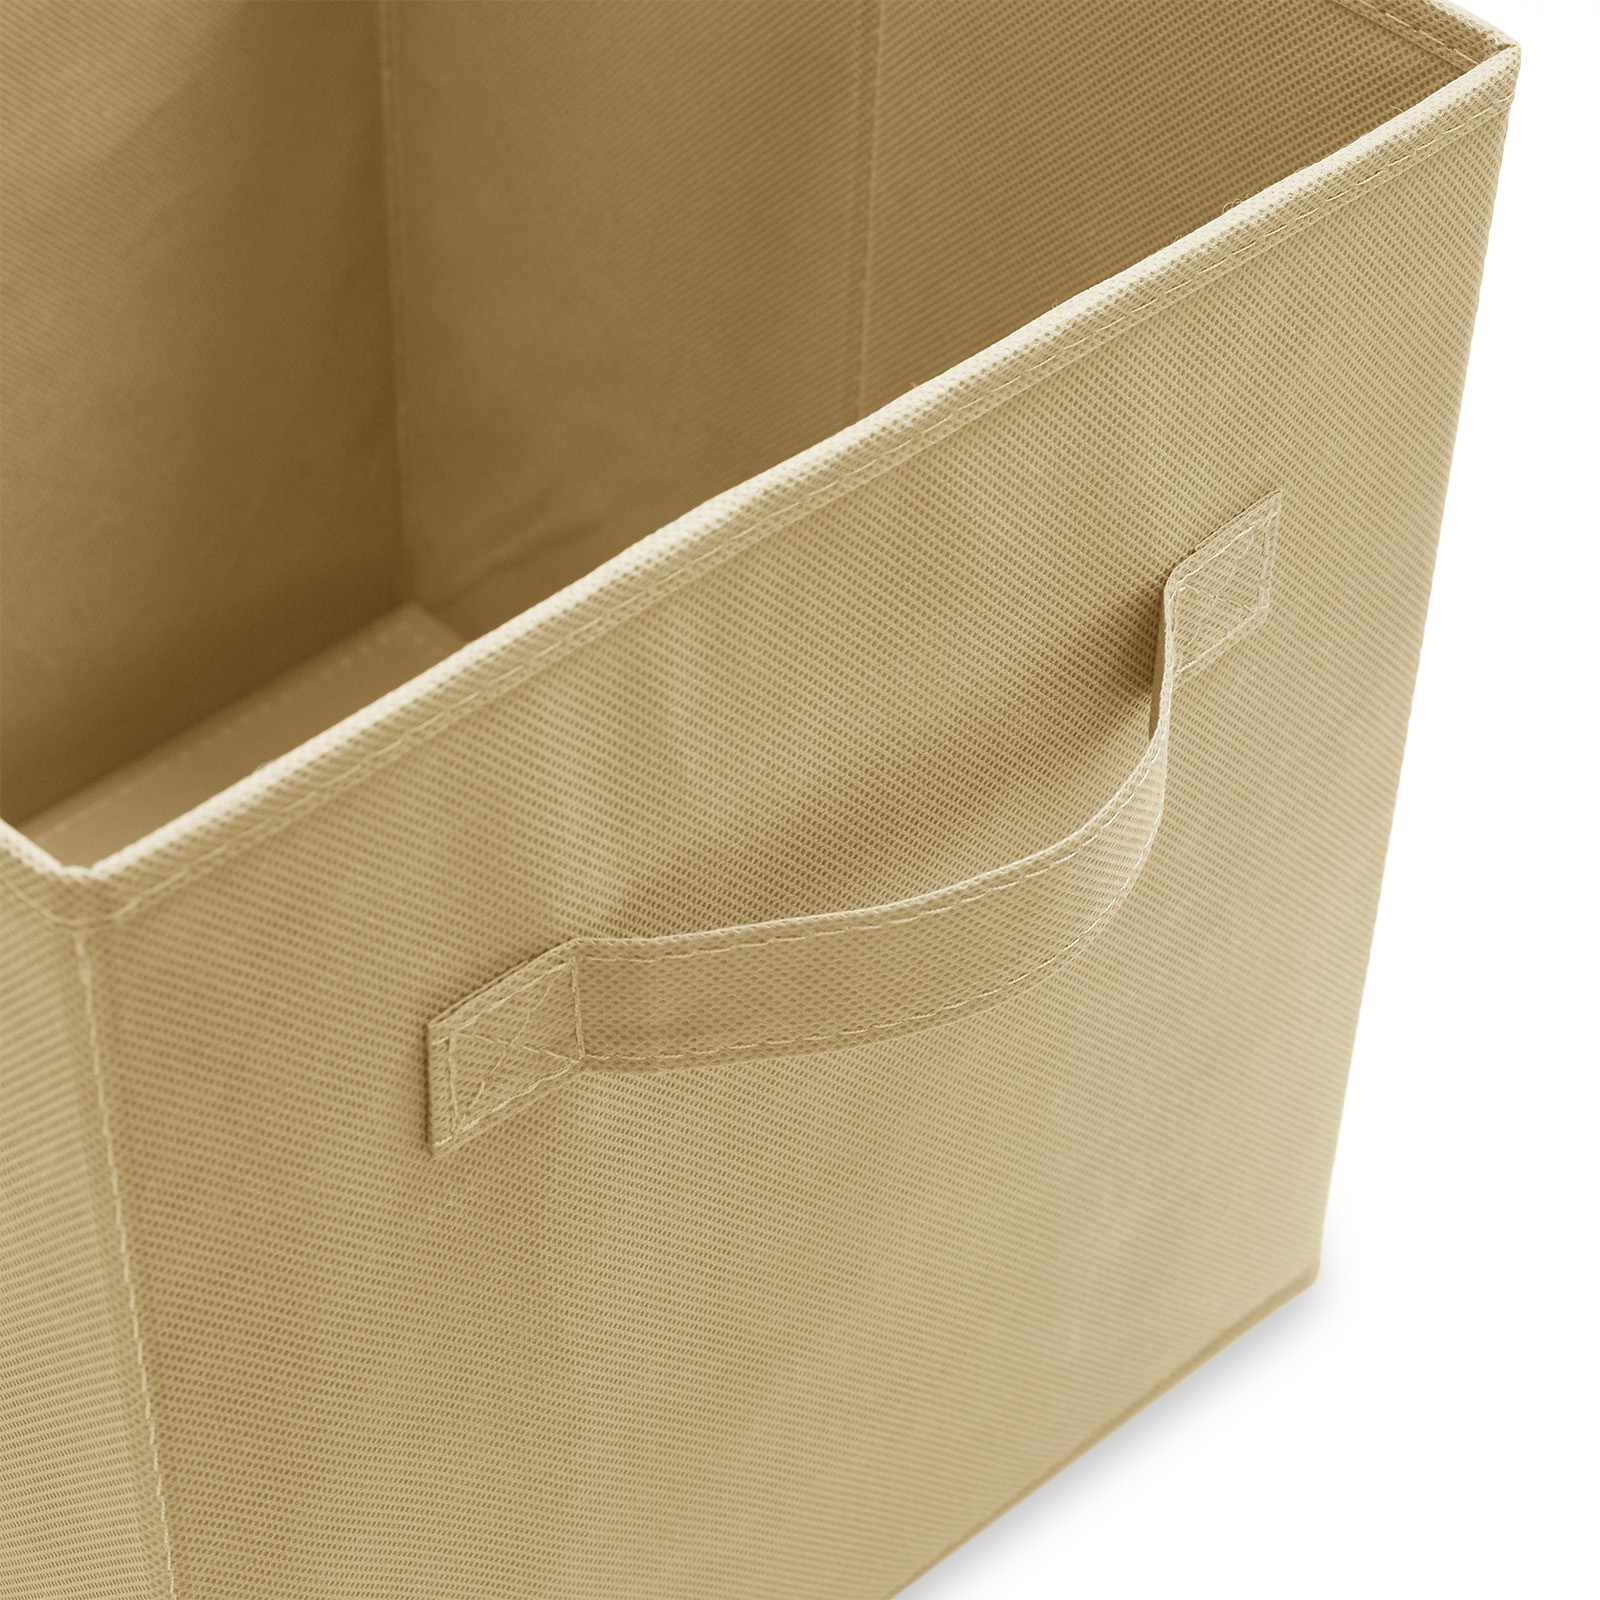 6-Collapsible-Foldable-Cloth-Fabric-Cubby-Cube-Storage-Bins-Baskets-for-Shelves thumbnail 73